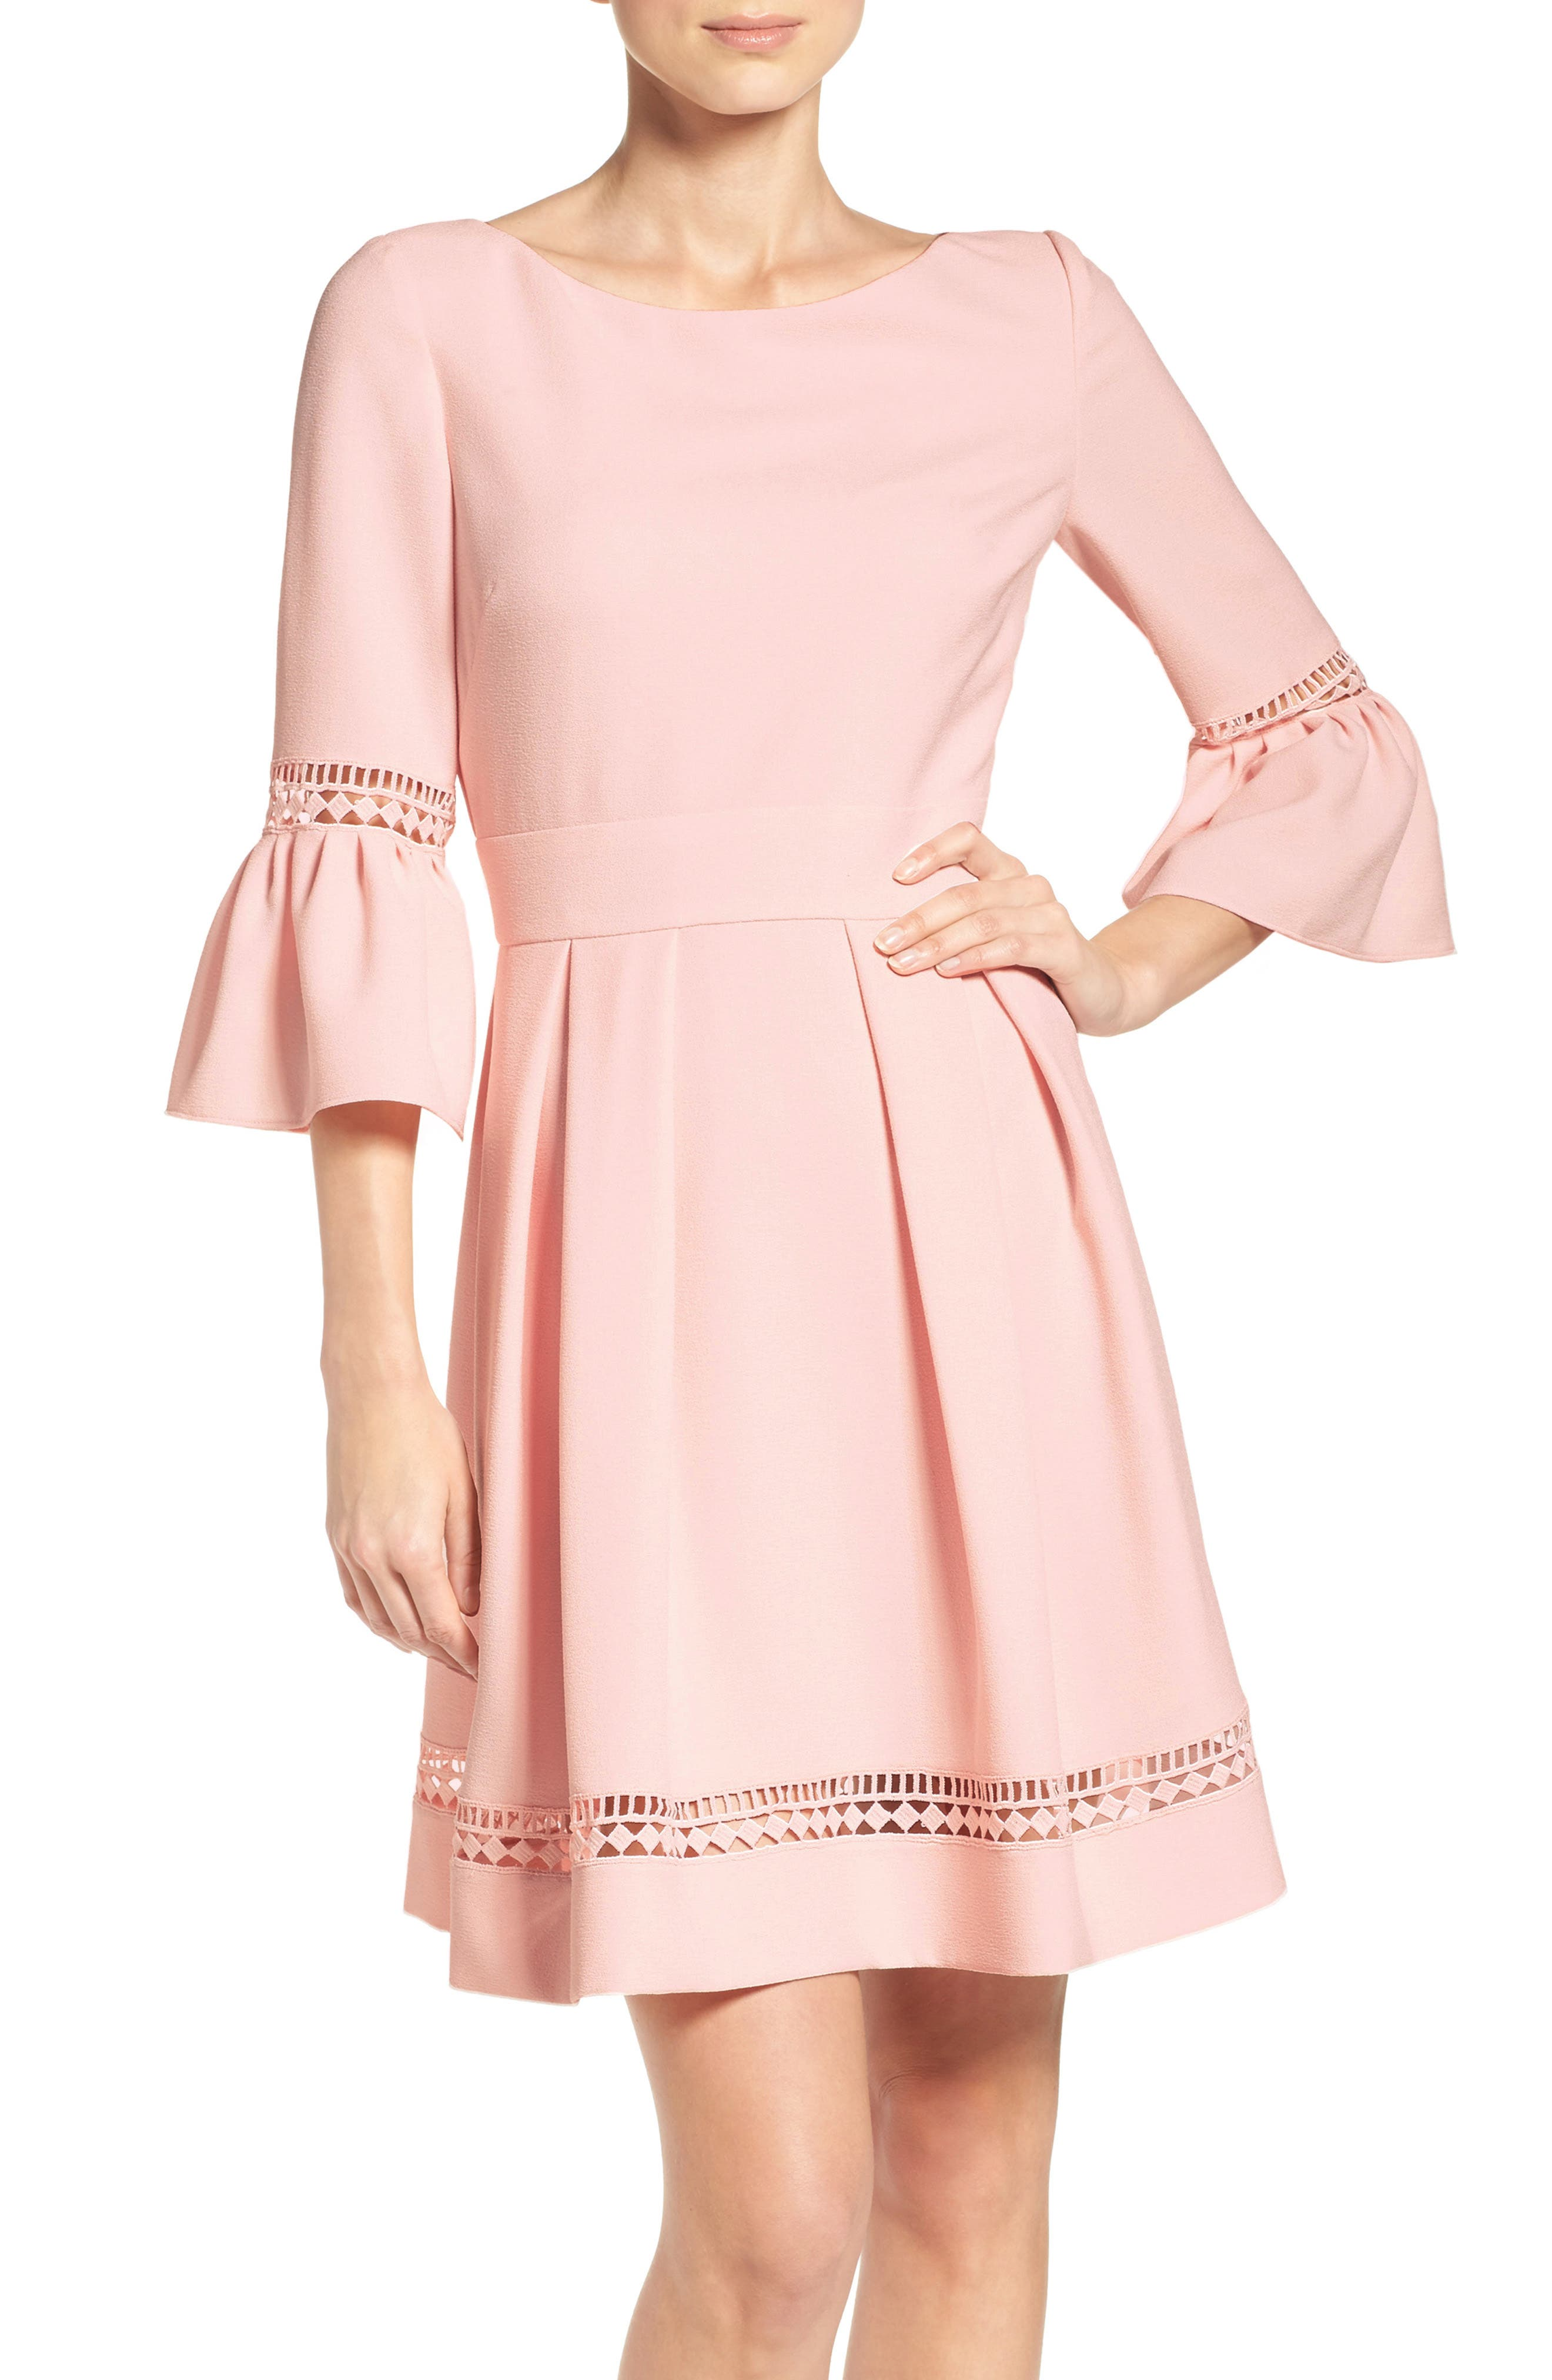 Eliza J Bell Sleeve Fit & Flare Dress, 8 (similar to 1) - Pink